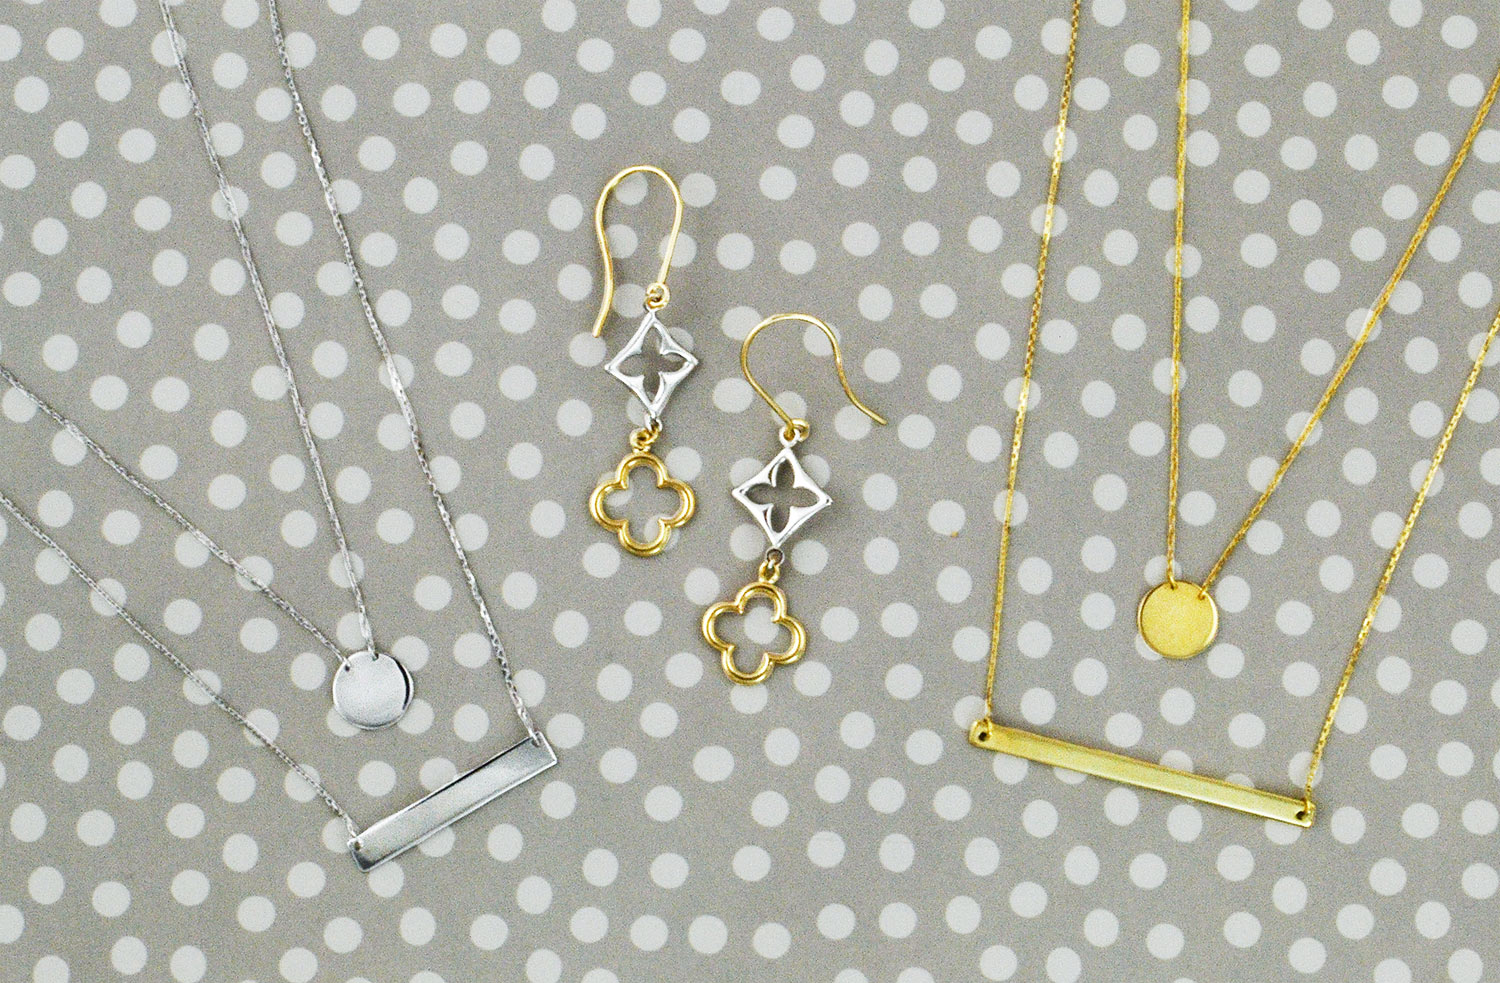 Treat-yourself-to-jewelry-starting-at-$145.jpg